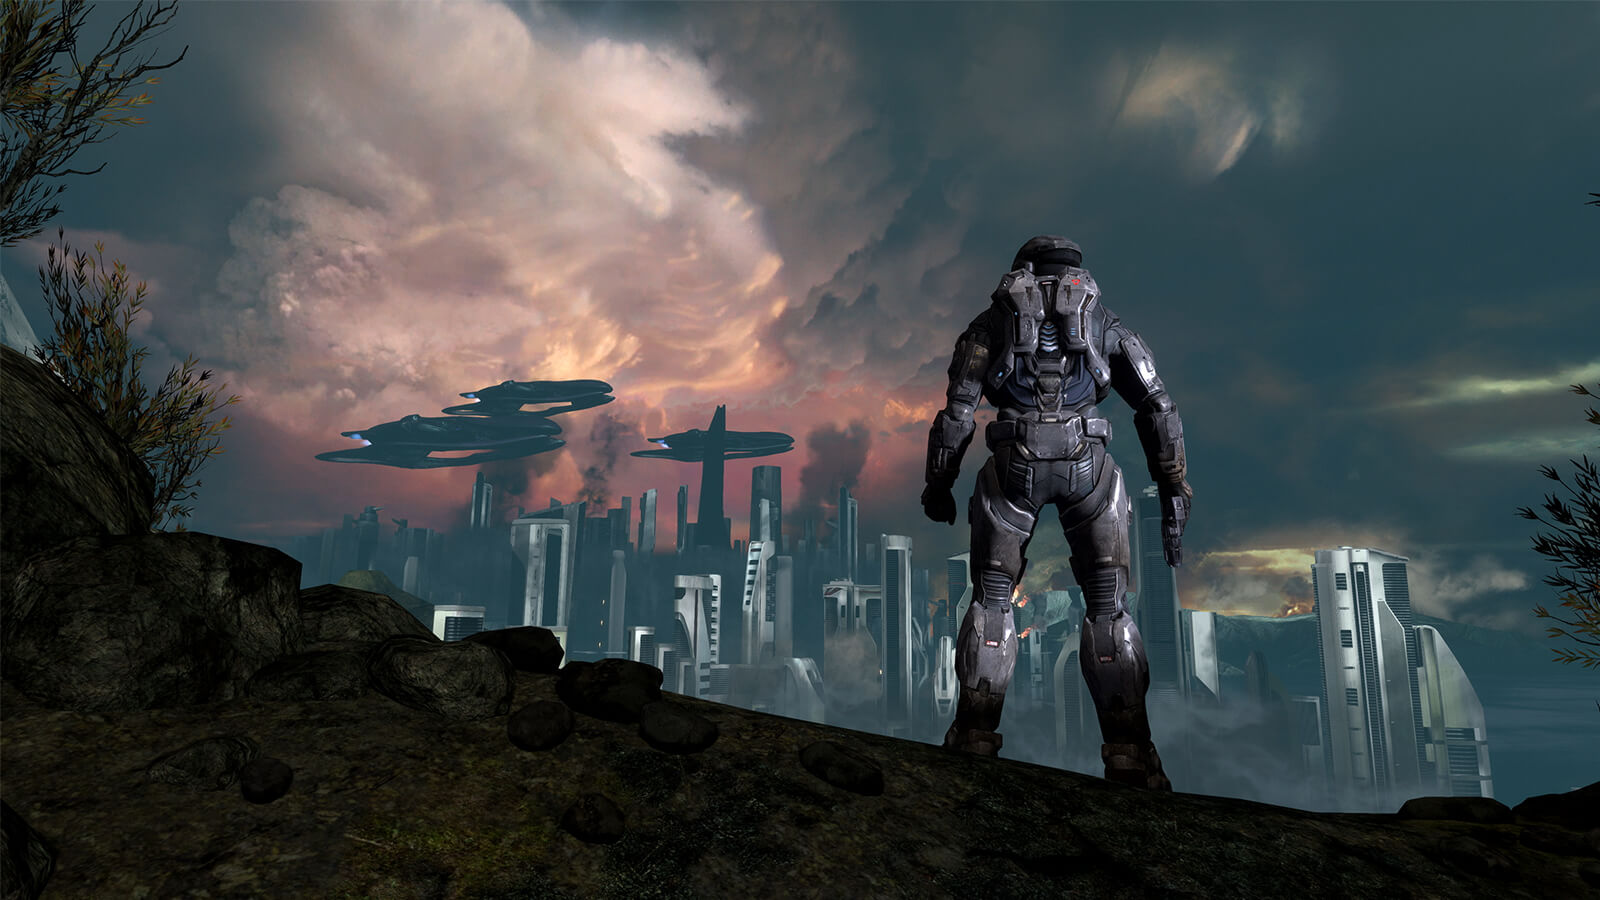 A futuristic soldier in full-body armor looks at a city in the distance.